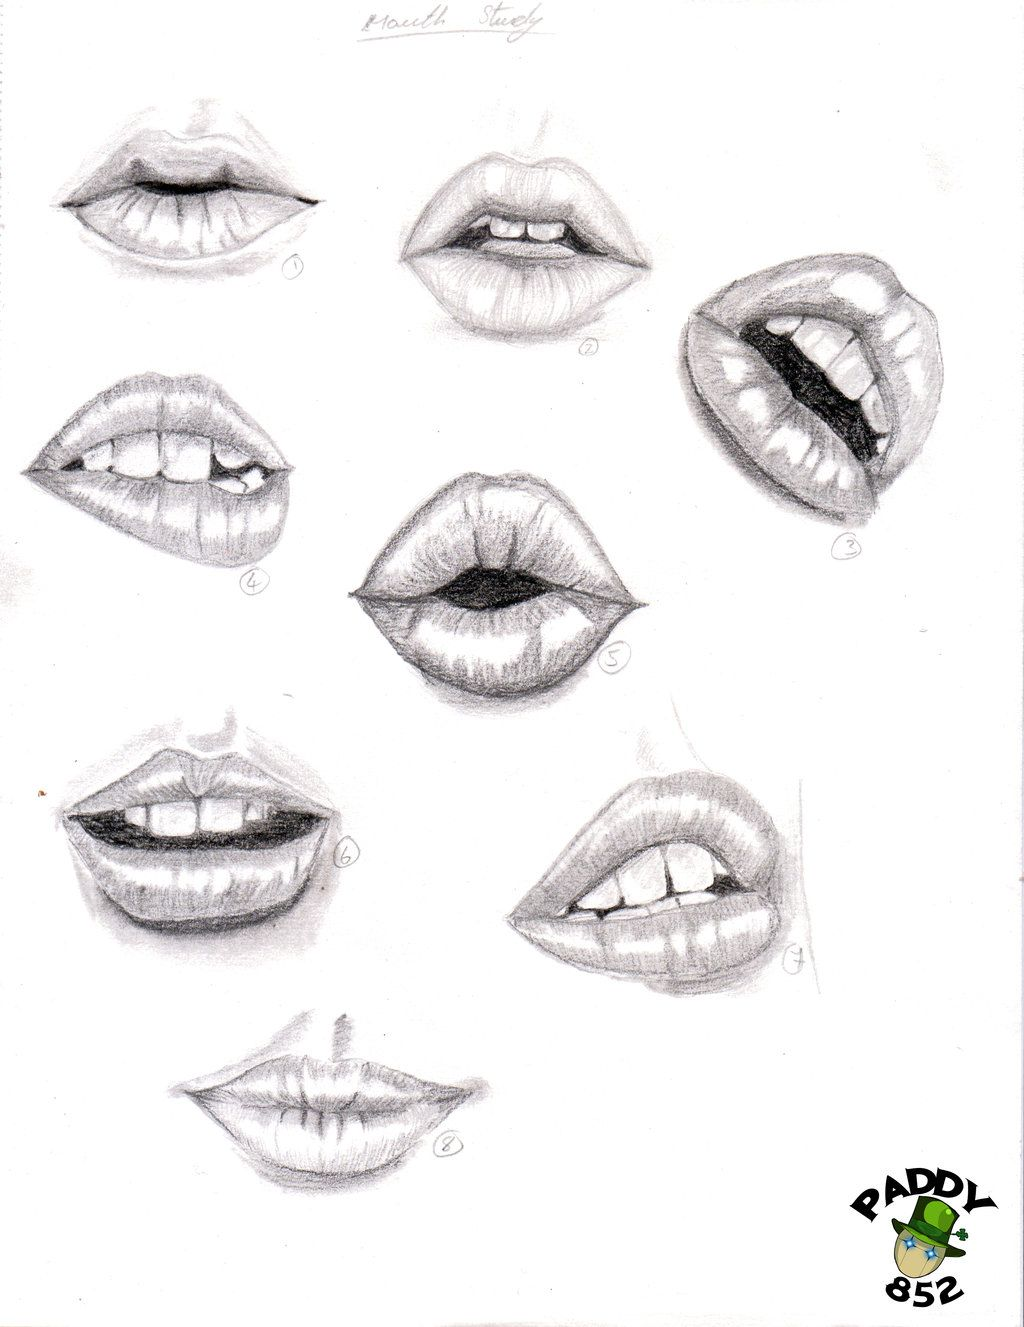 How To Draw Black Lips : black, Study, Paddy852, DeviantART, Drawing,, Drawing, People